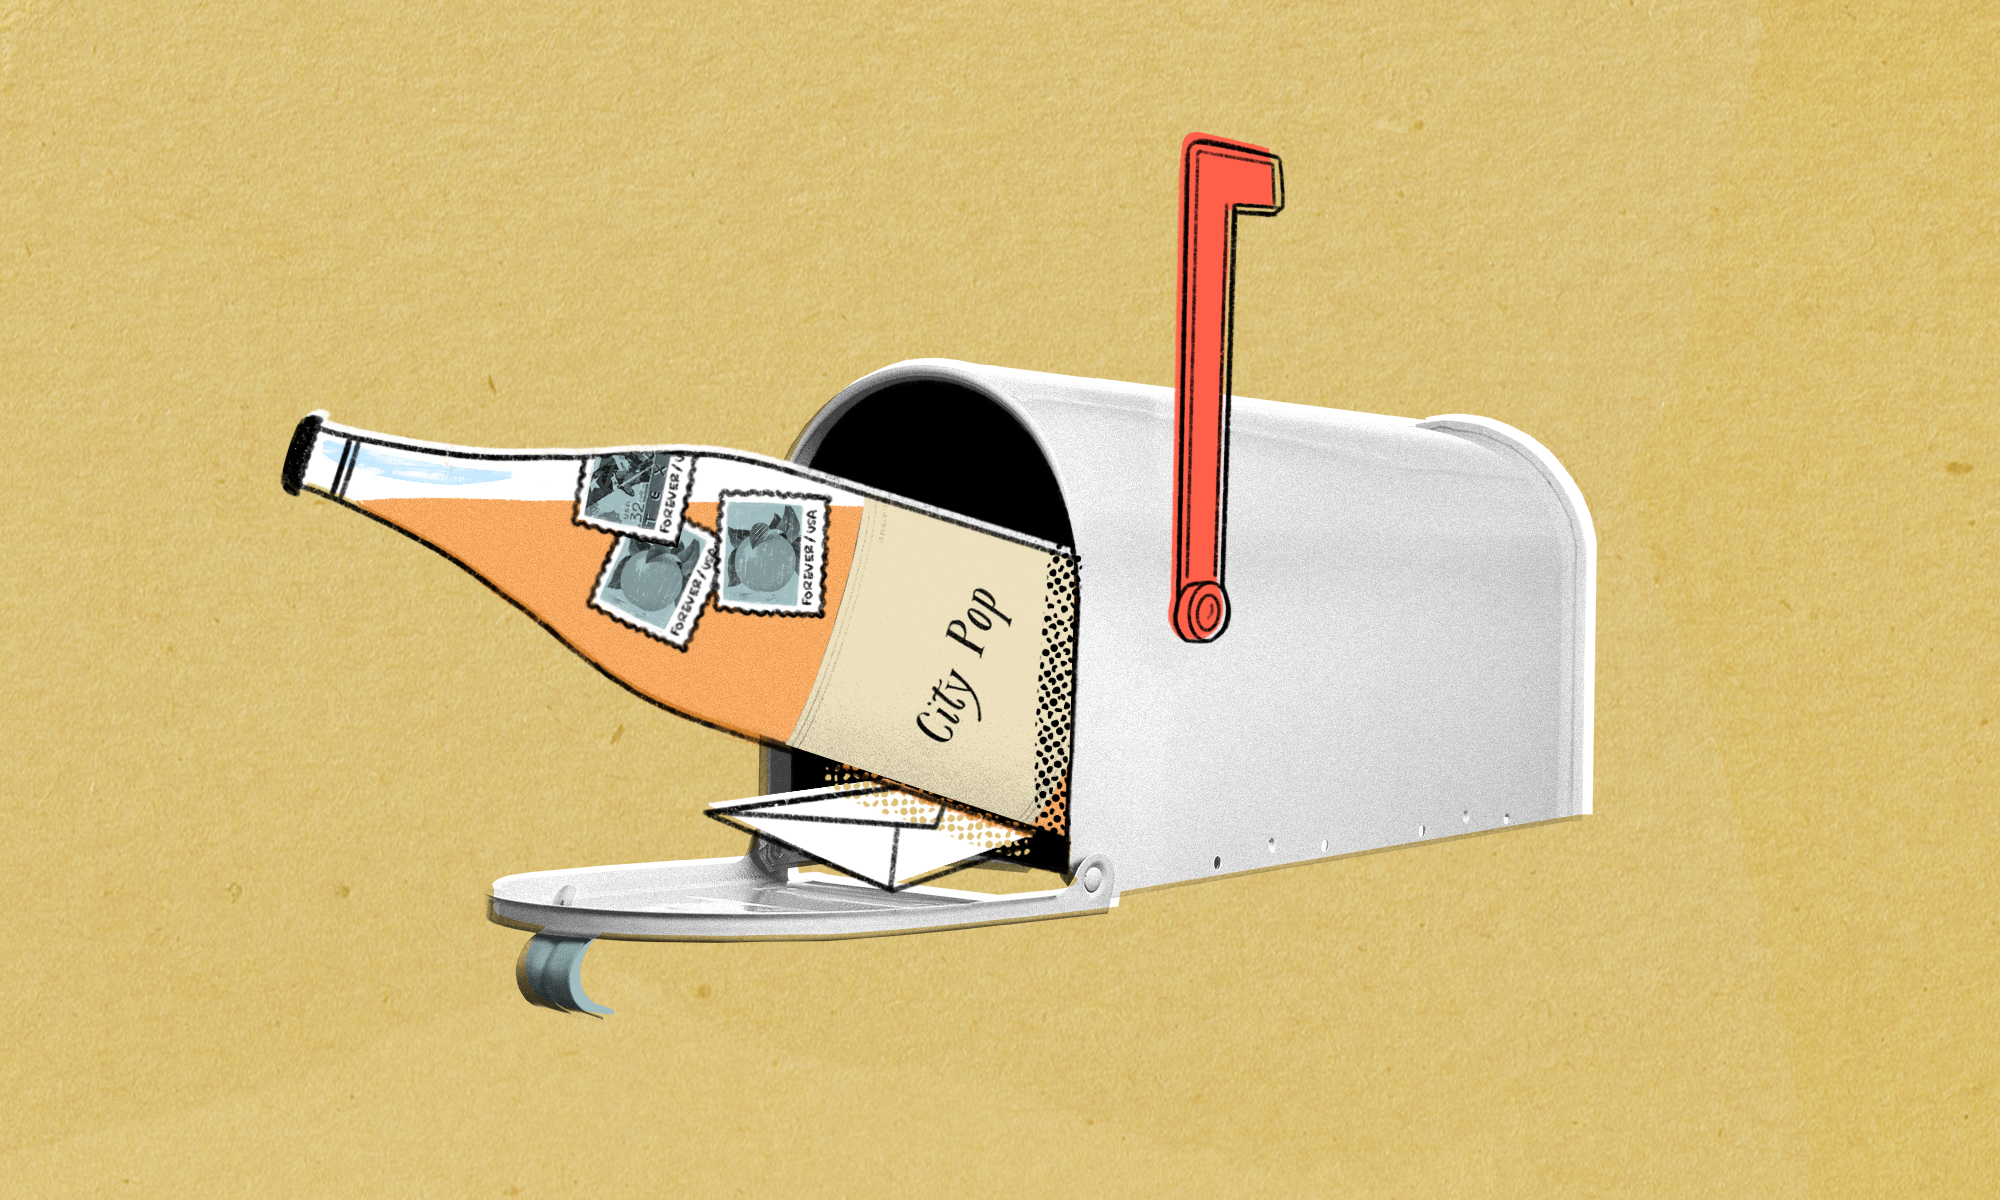 Drawing of a wine bottle coming out of a home mailbox